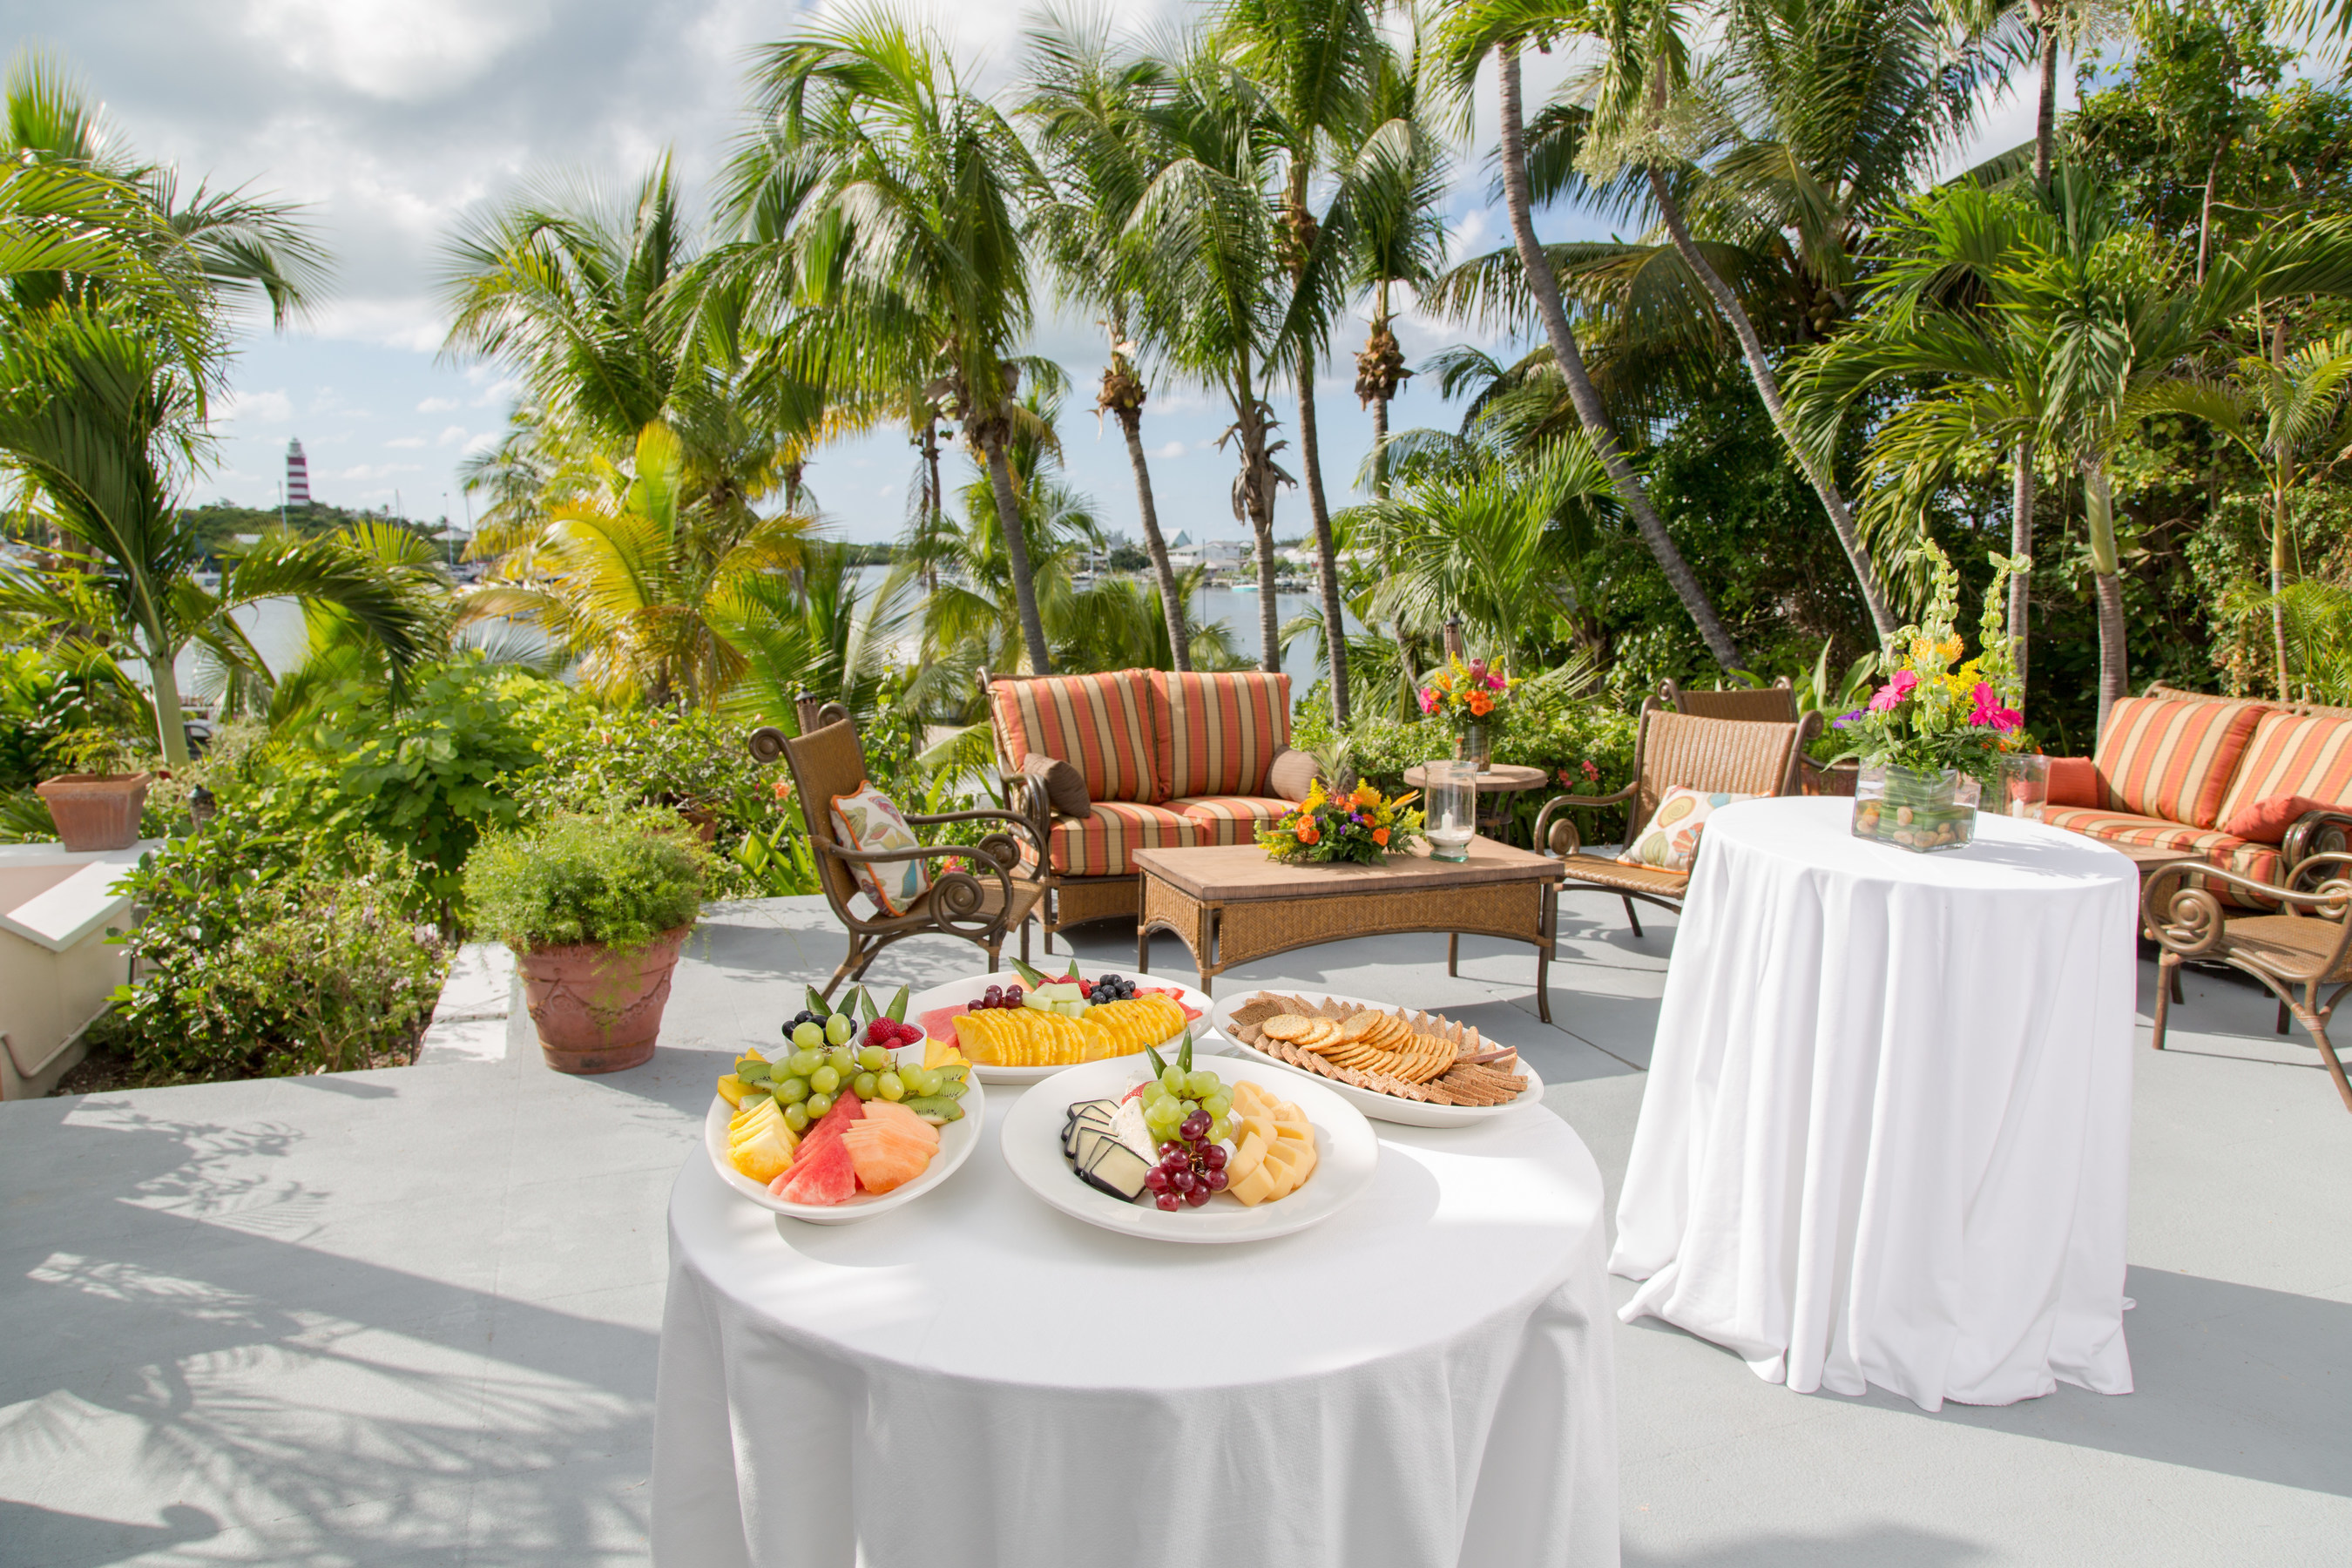 Hope Town Harbour Lodge in Abaco, Bahamas is a member of the Ascend Hotel Collection by Choice Hotels